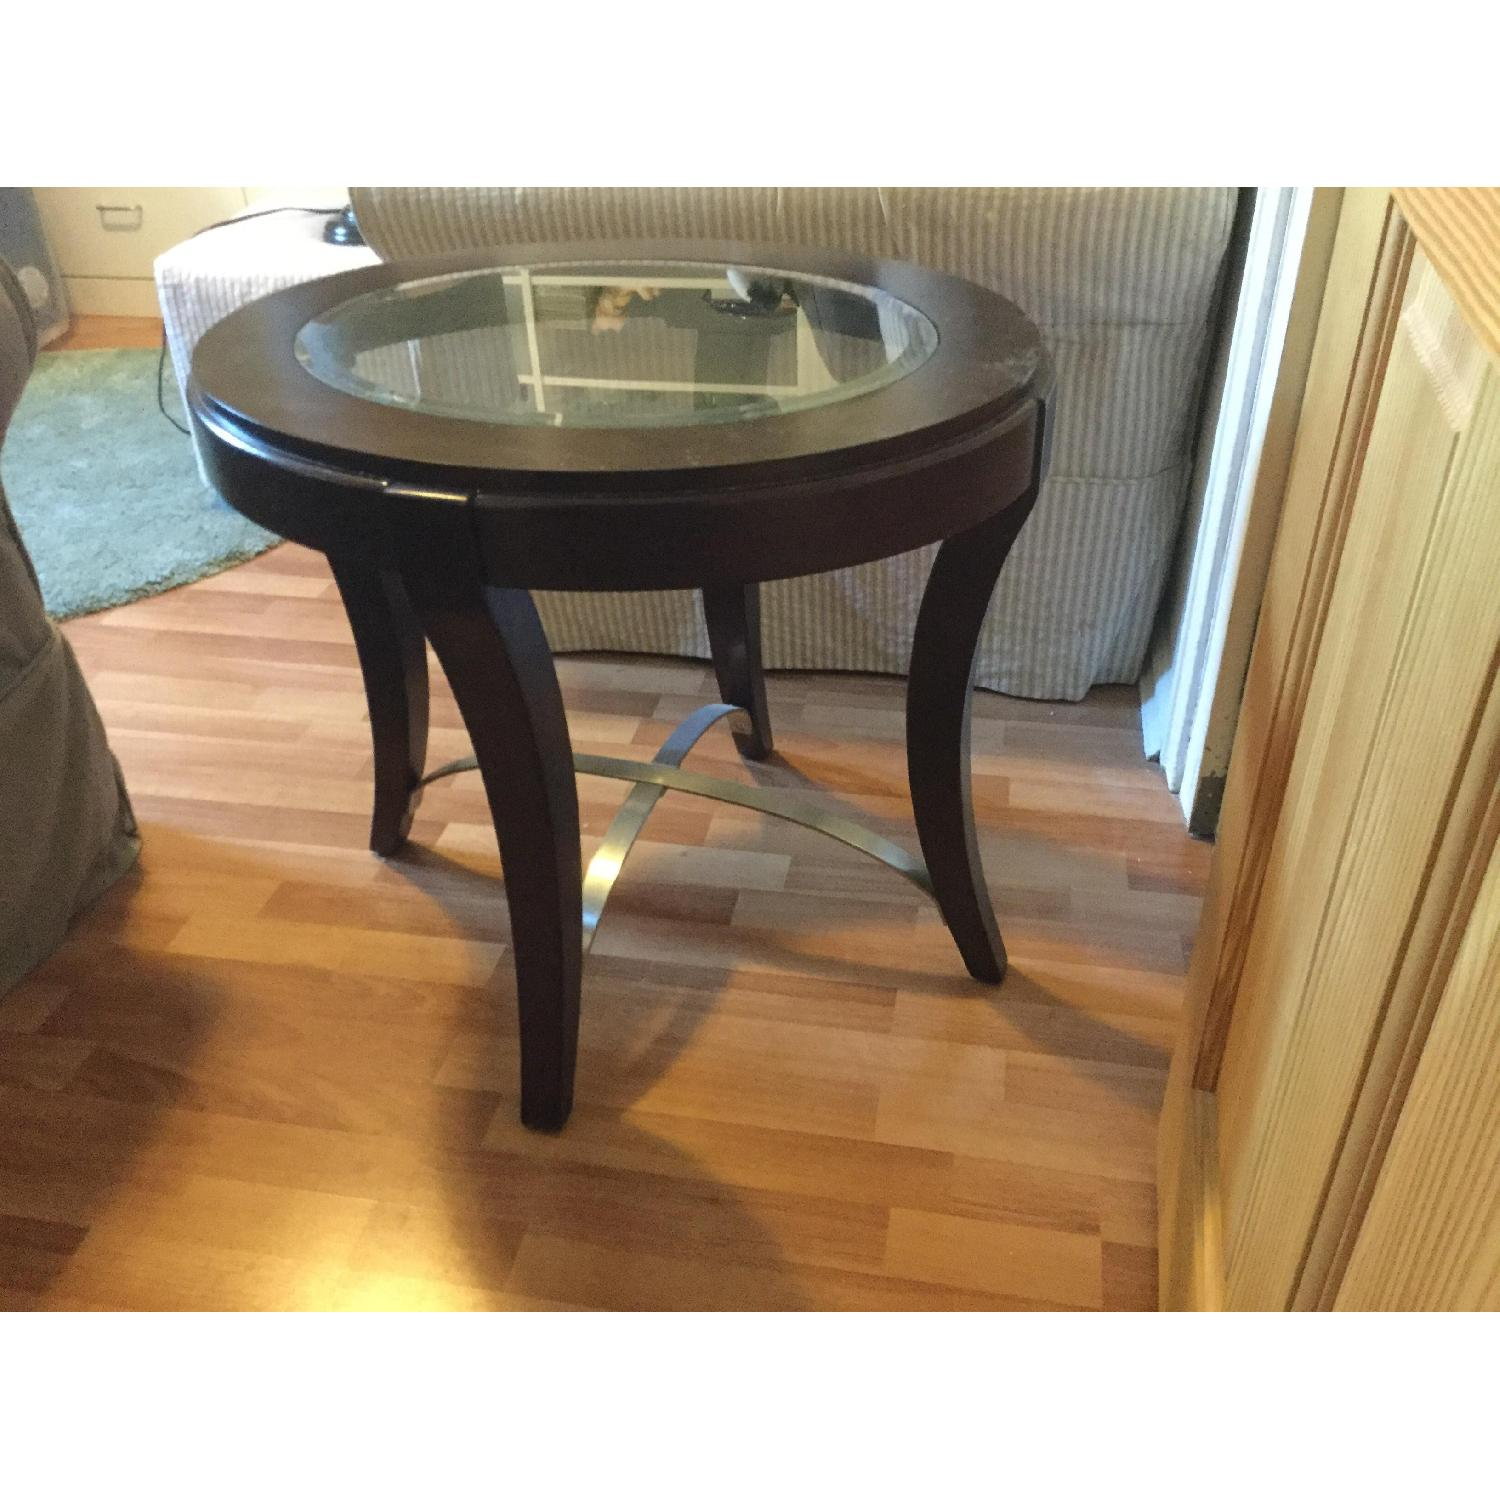 Raymour & Flanigan End Table w/ Glass Insert - image-1